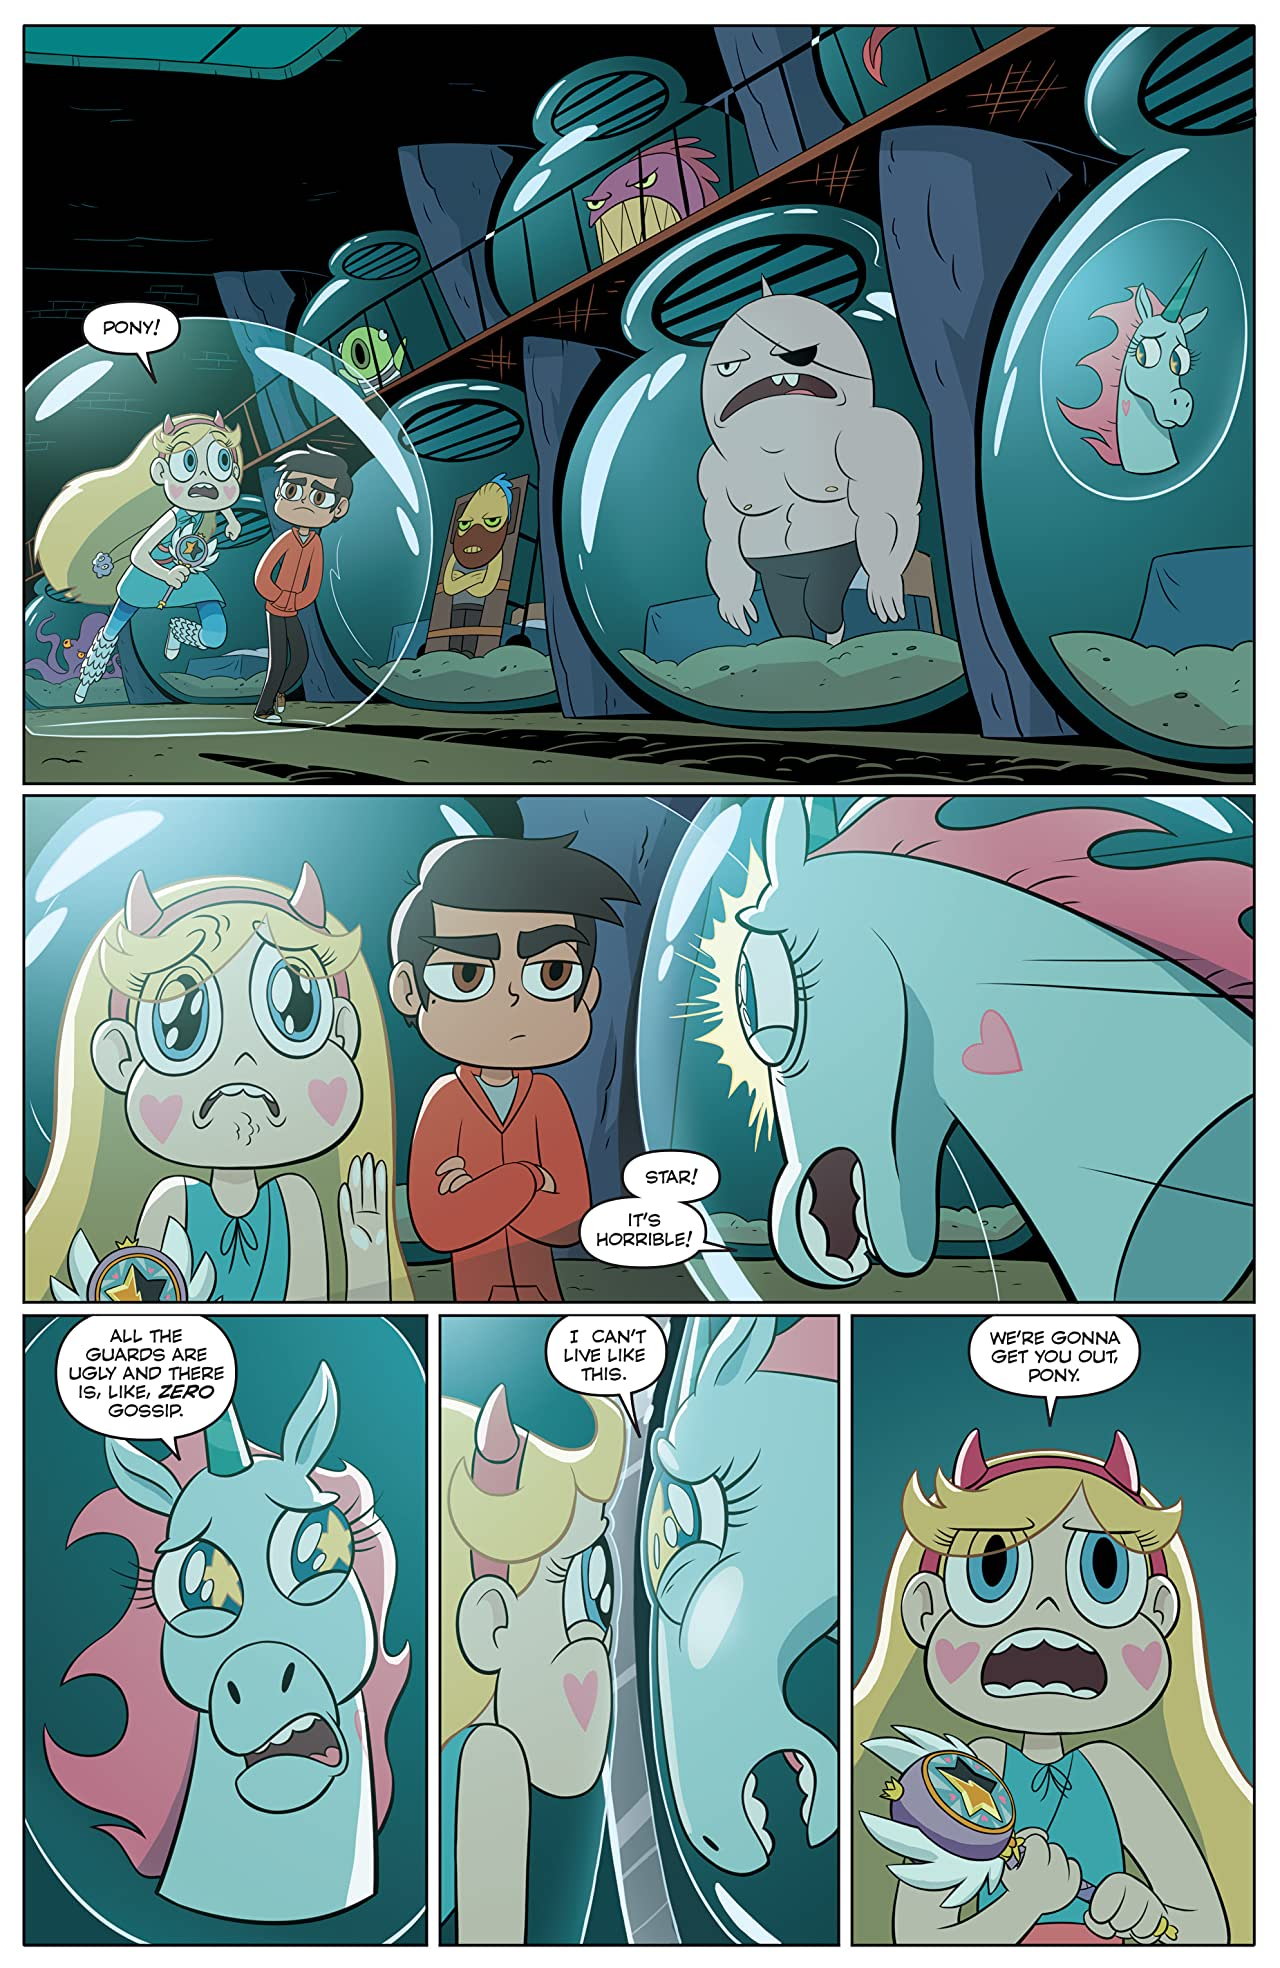 Disney Star Vs the Forces of Evil #4